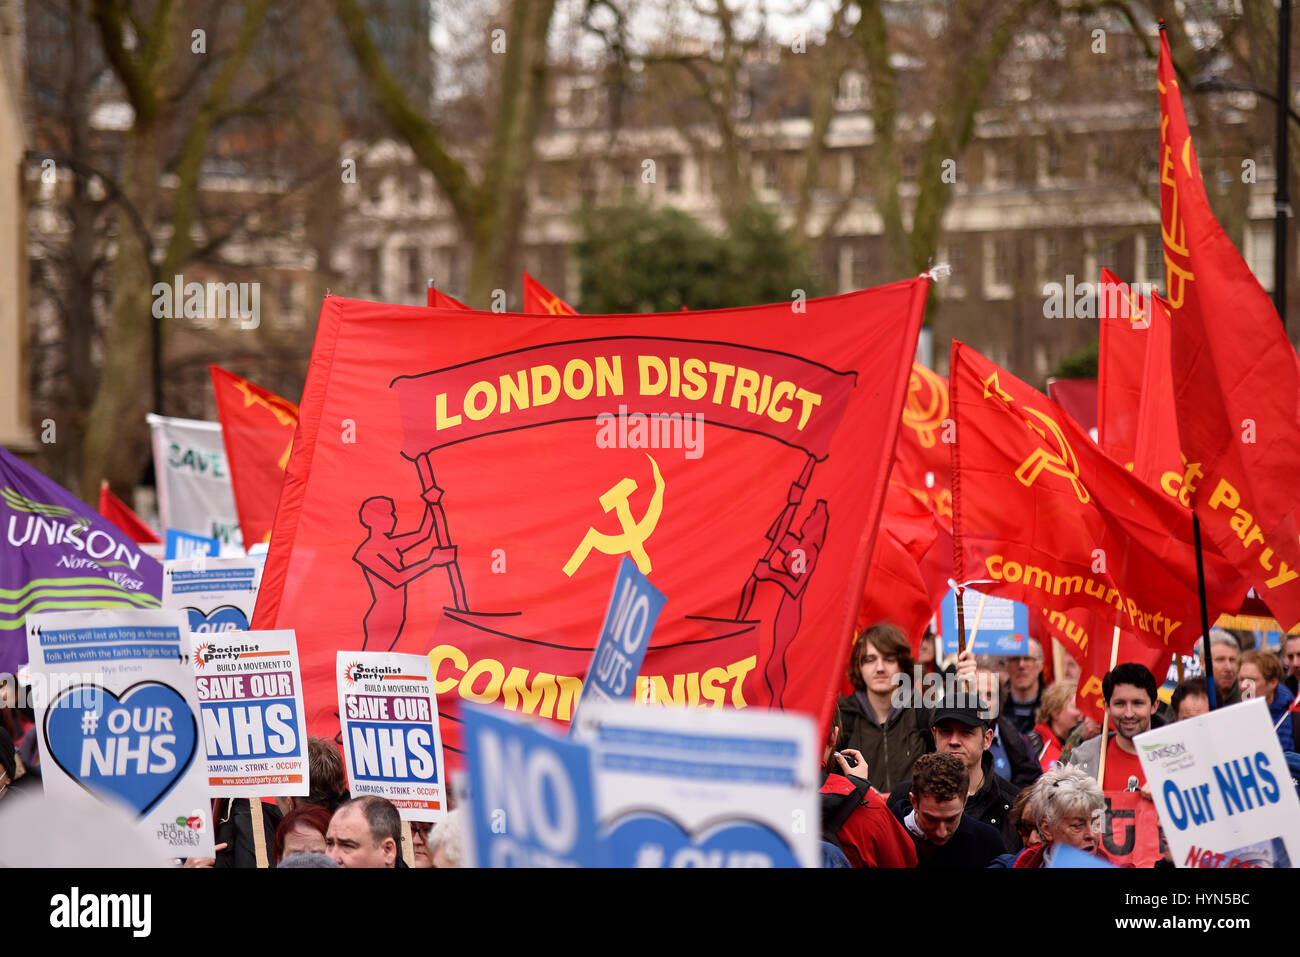 Communist Party flags during the 'Our NHS' support for the National Health Service demonstration on Parliament, - Stock Image